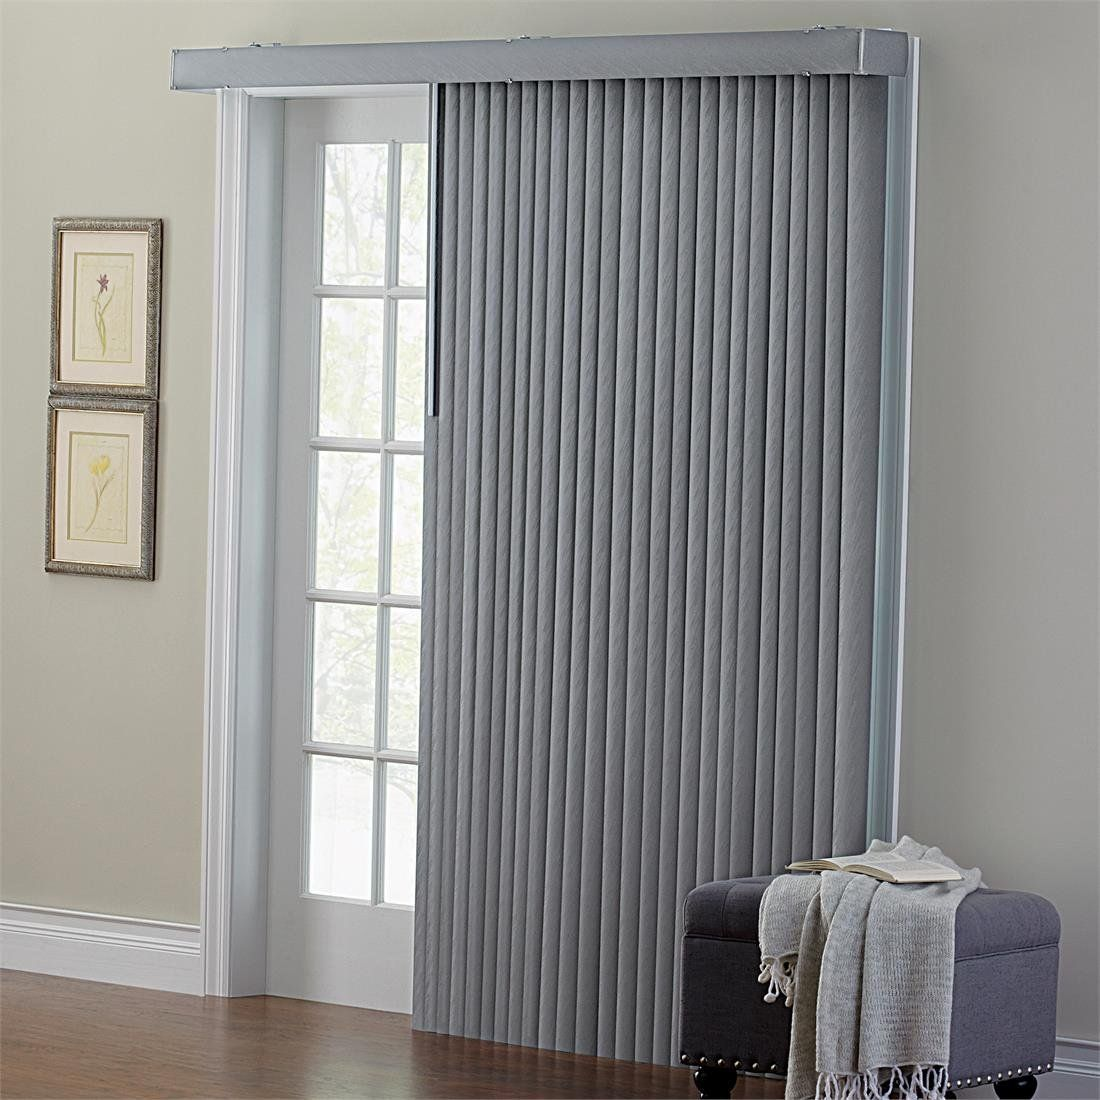 Embossed vertical blinds grey window treatments pinterest